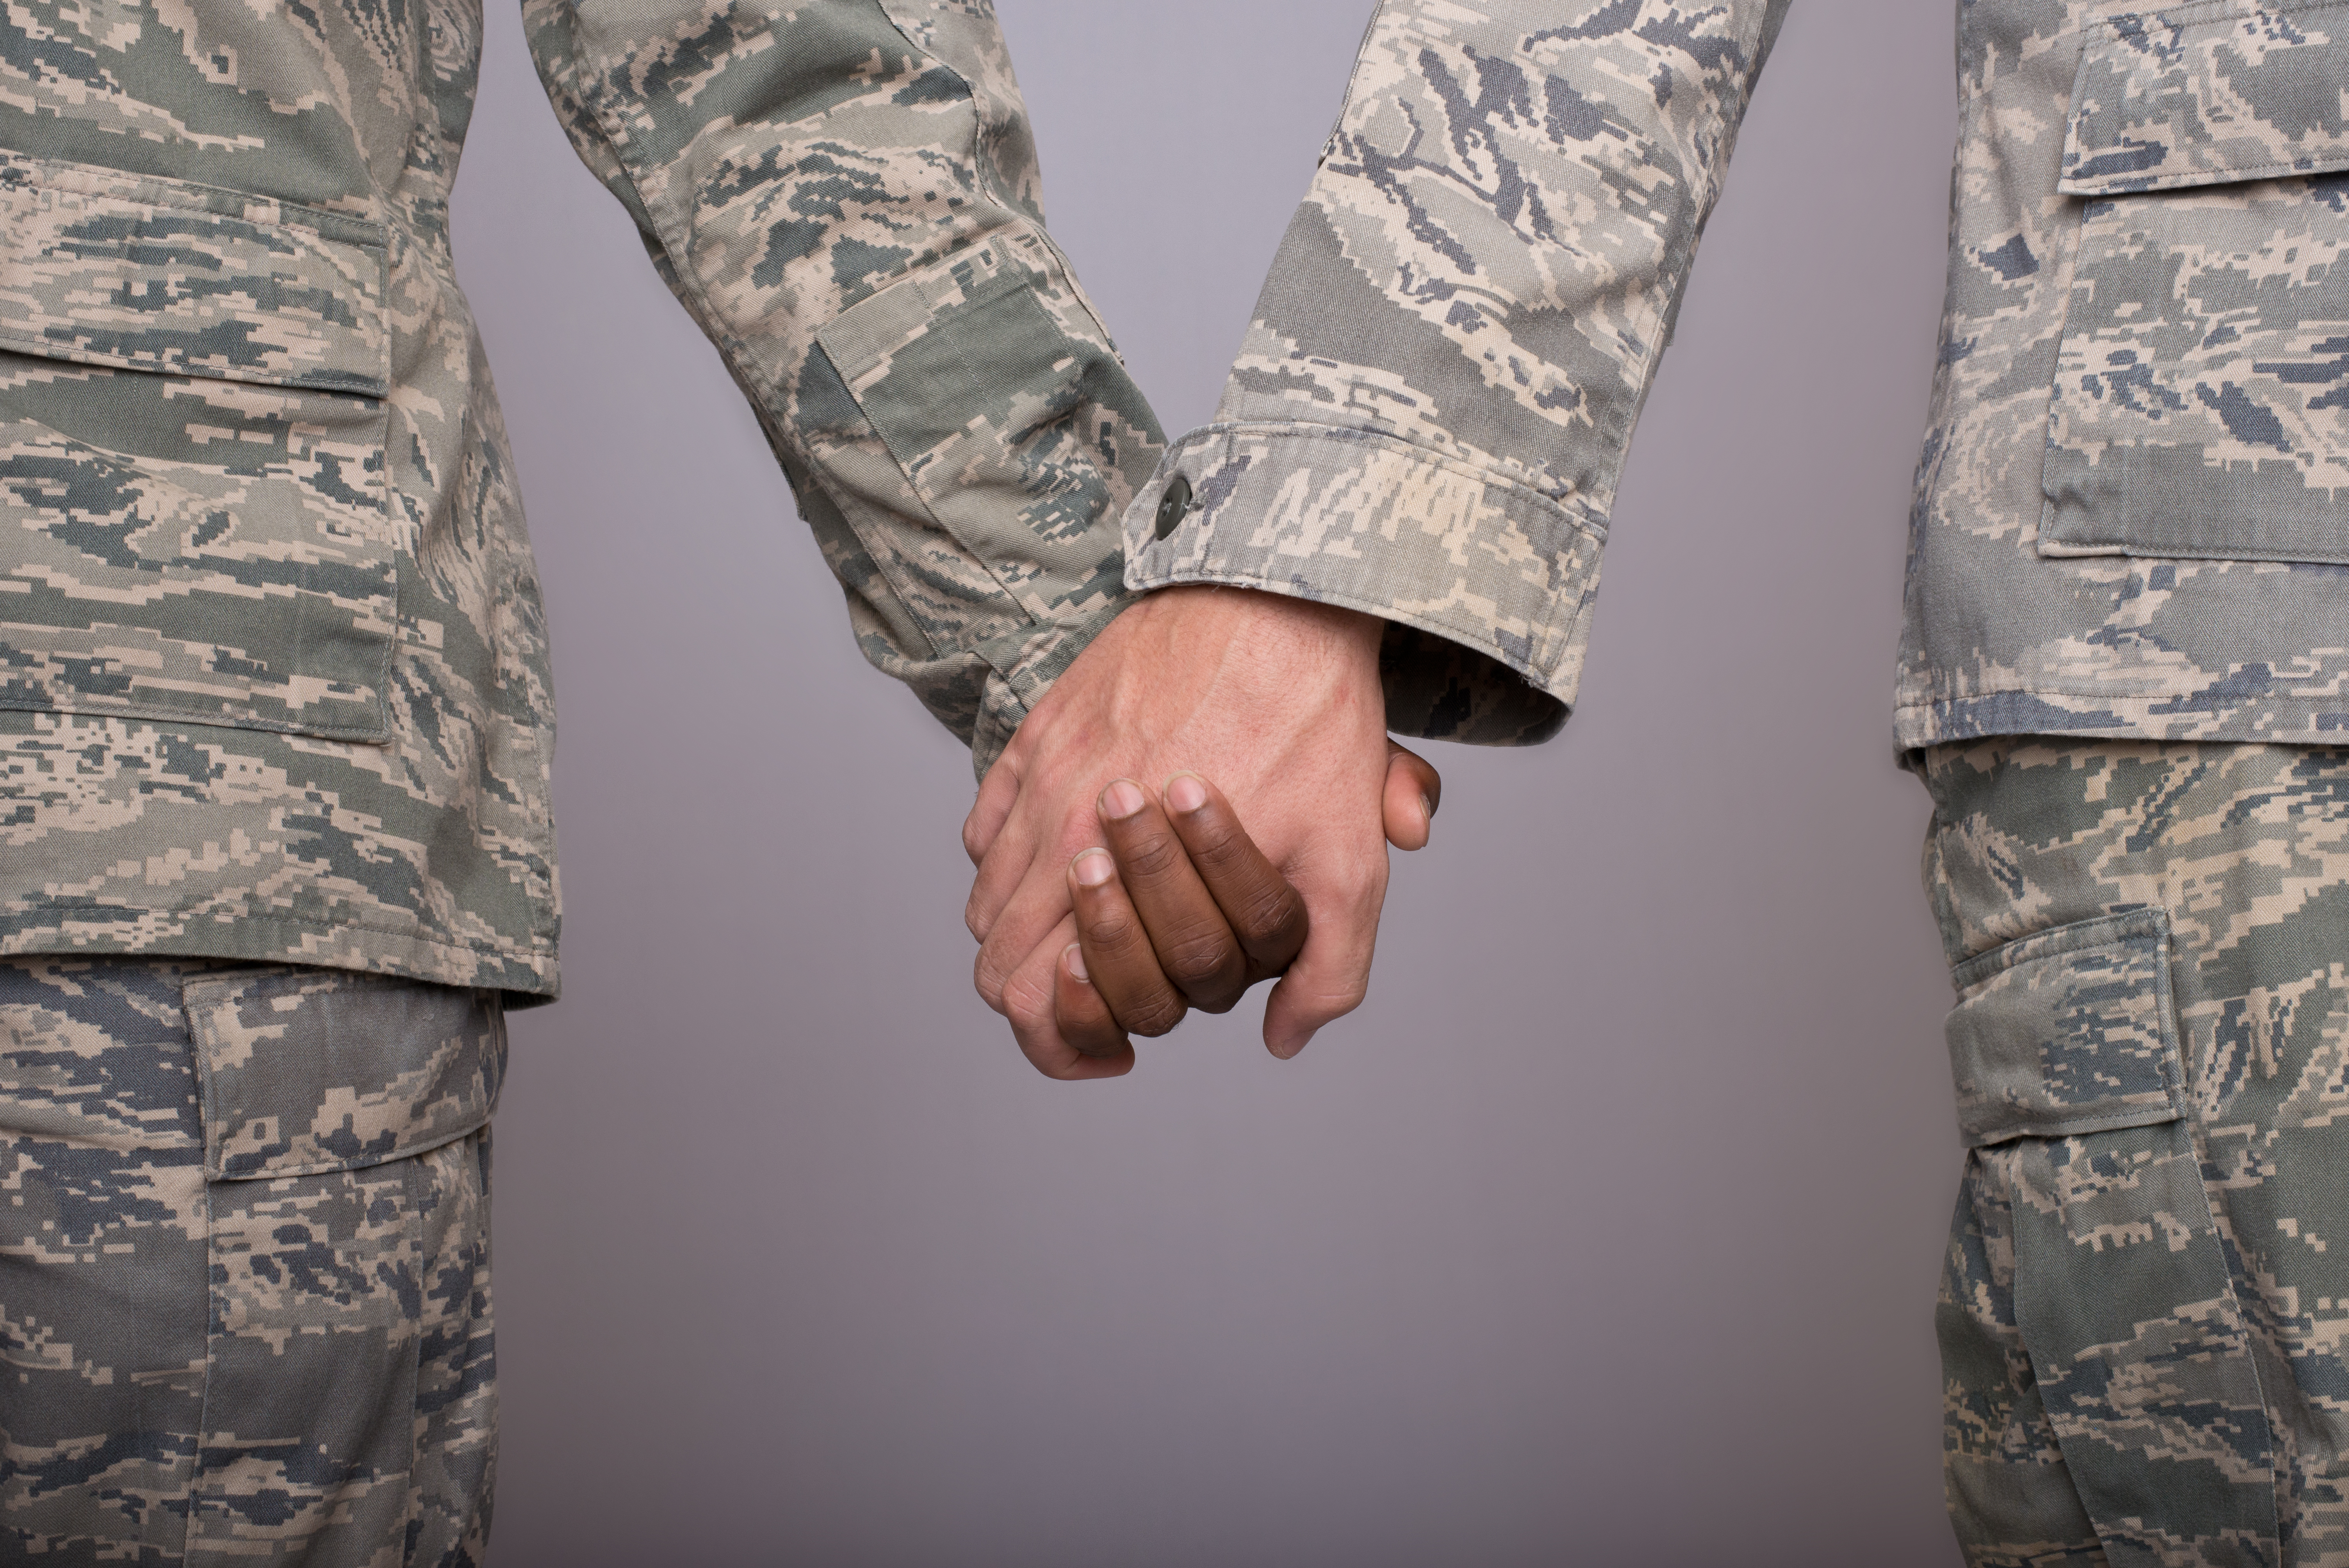 U.S. military sees some progress 10 years after 'don't ask, don't tell' repeal